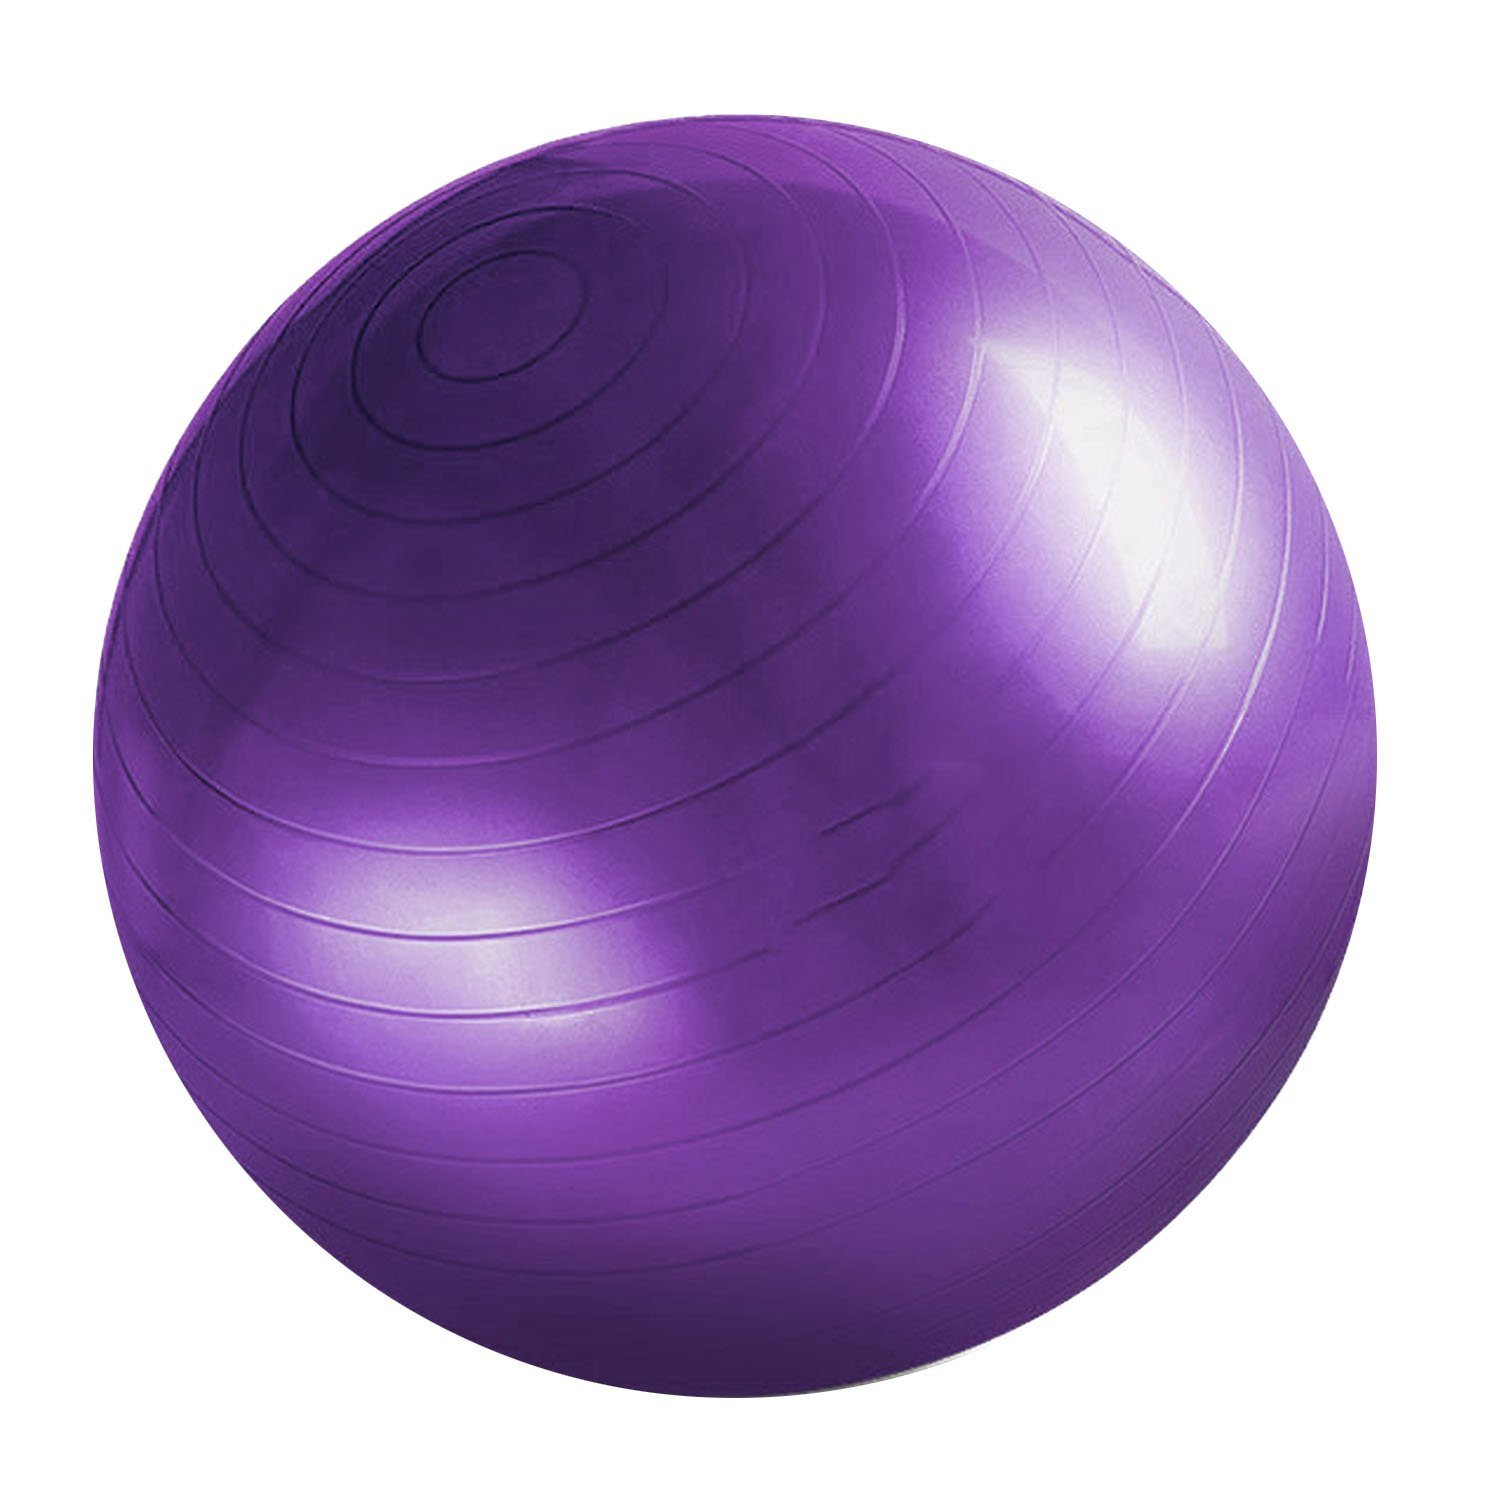 Fitness Ball Comfortable Durable Thickened Explosion-proof Yoga Gym Training Ball Purple